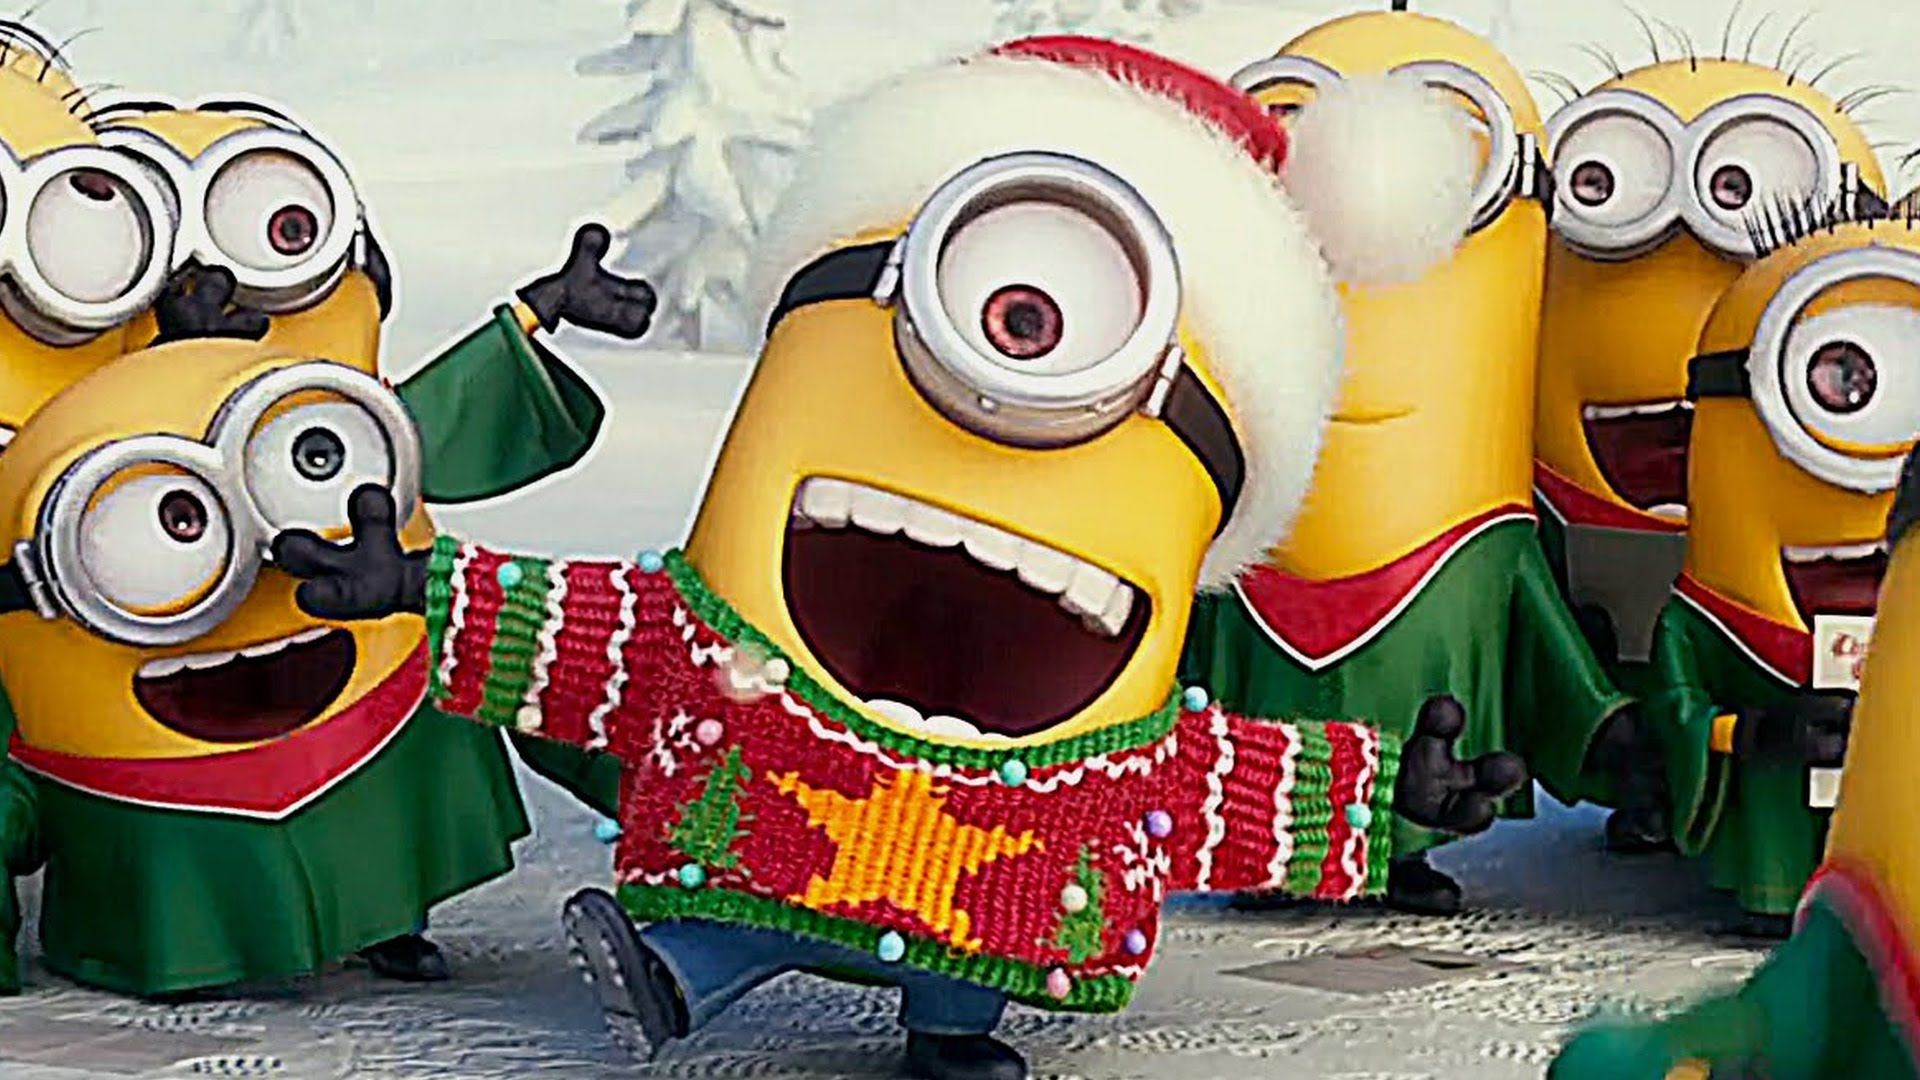 Pin by Patricia K on Minions Got to love them